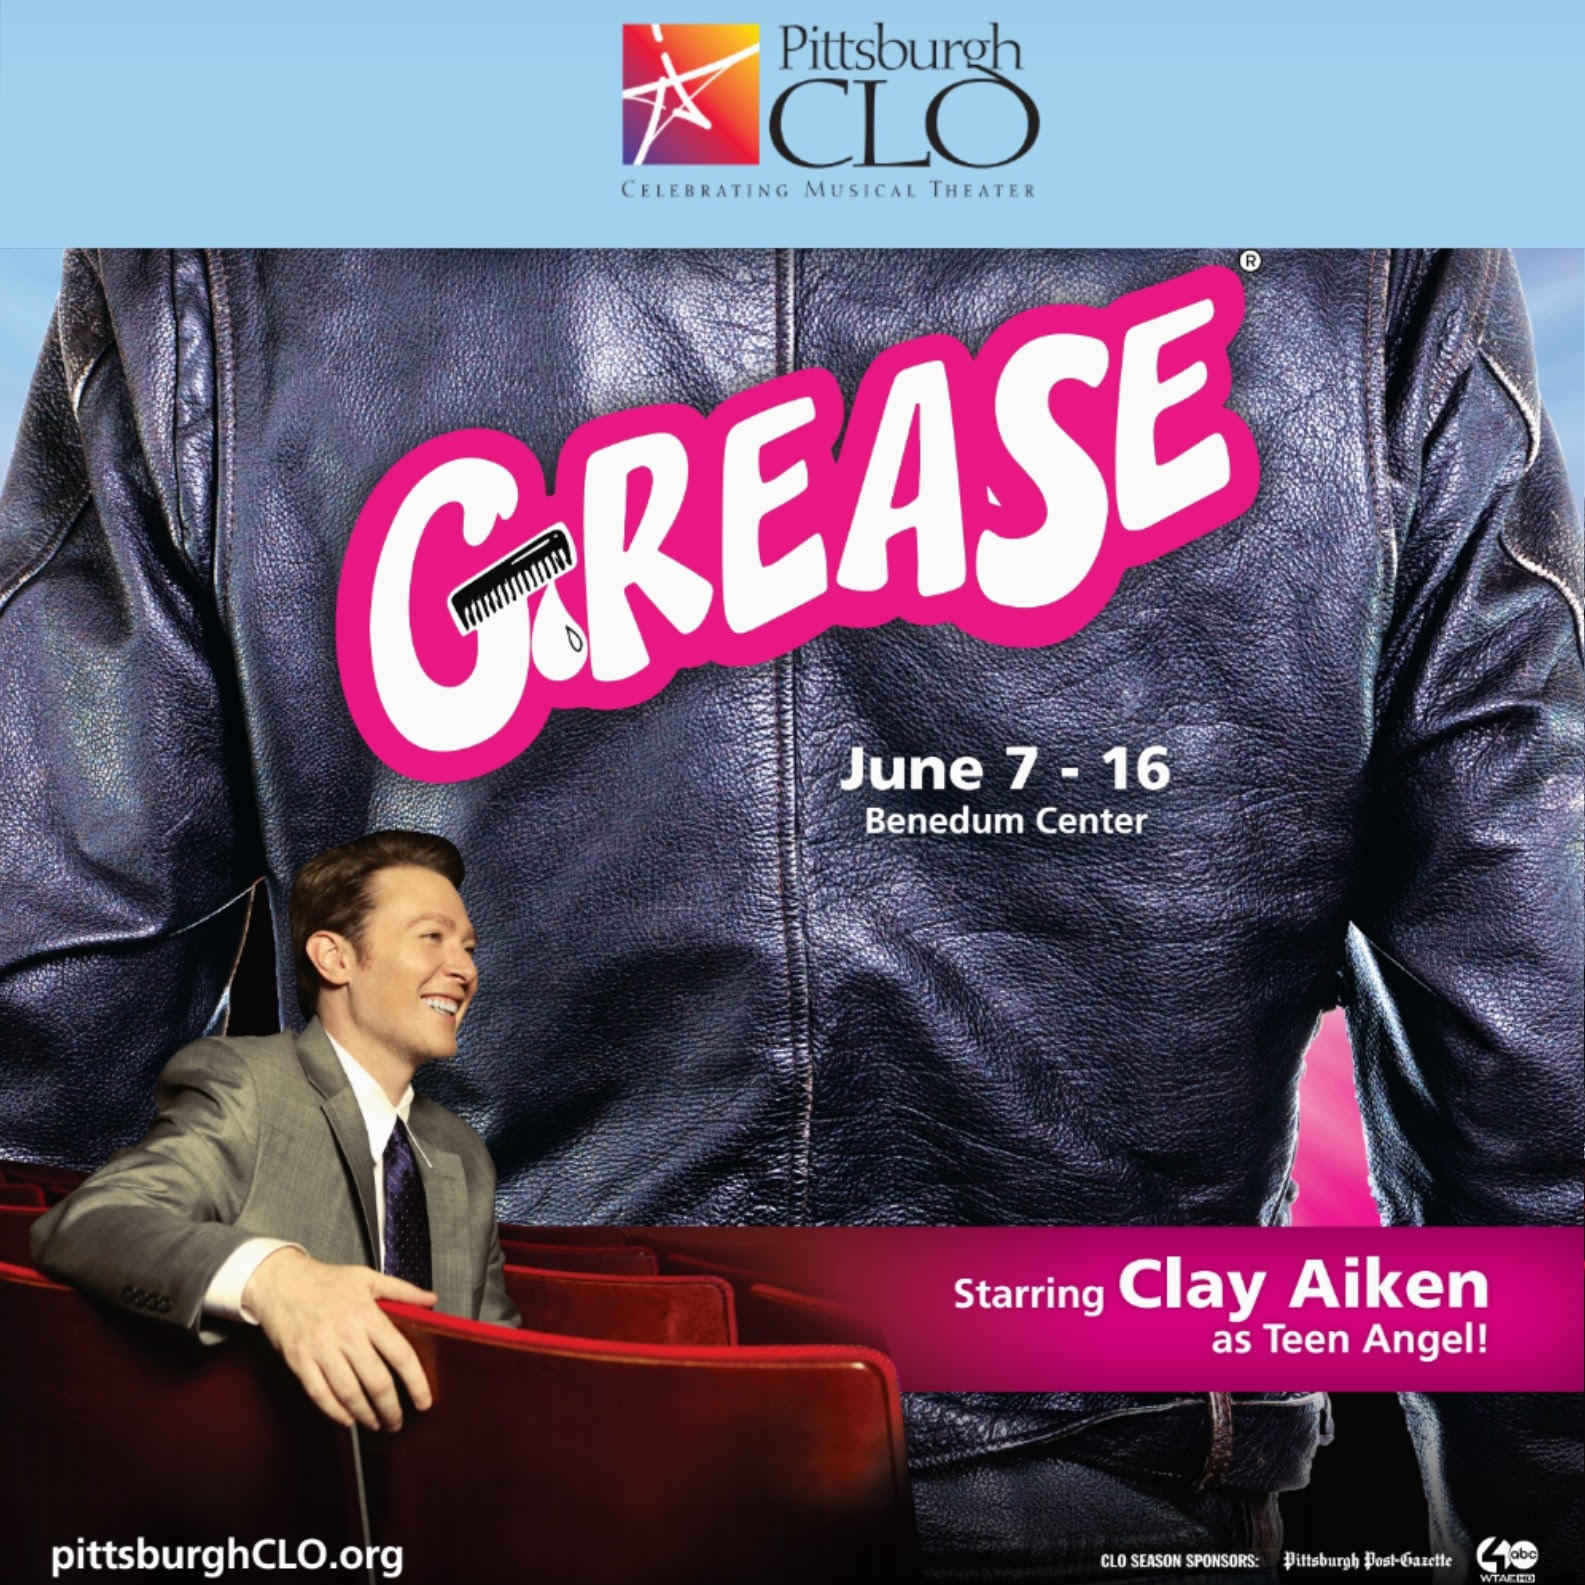 Donate for a chance to win a Meet & Greet for 2 with Clay Aiken during Grease at the Pittsburgh CLO (tickets included!) image